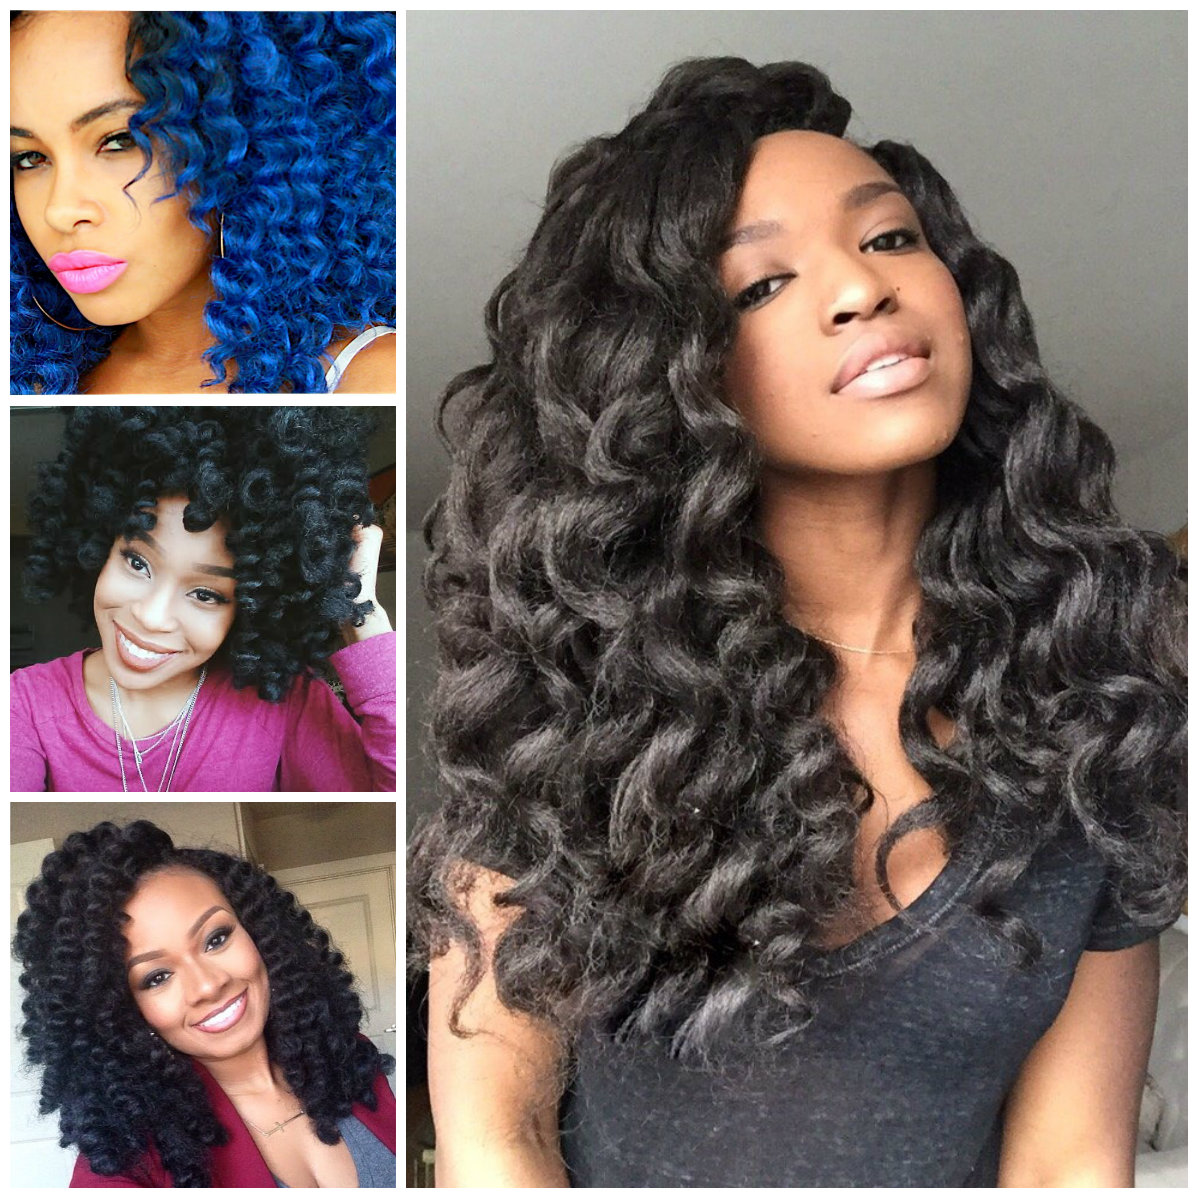 crochet braids hairstyle ideas for black women 2016 | 2017